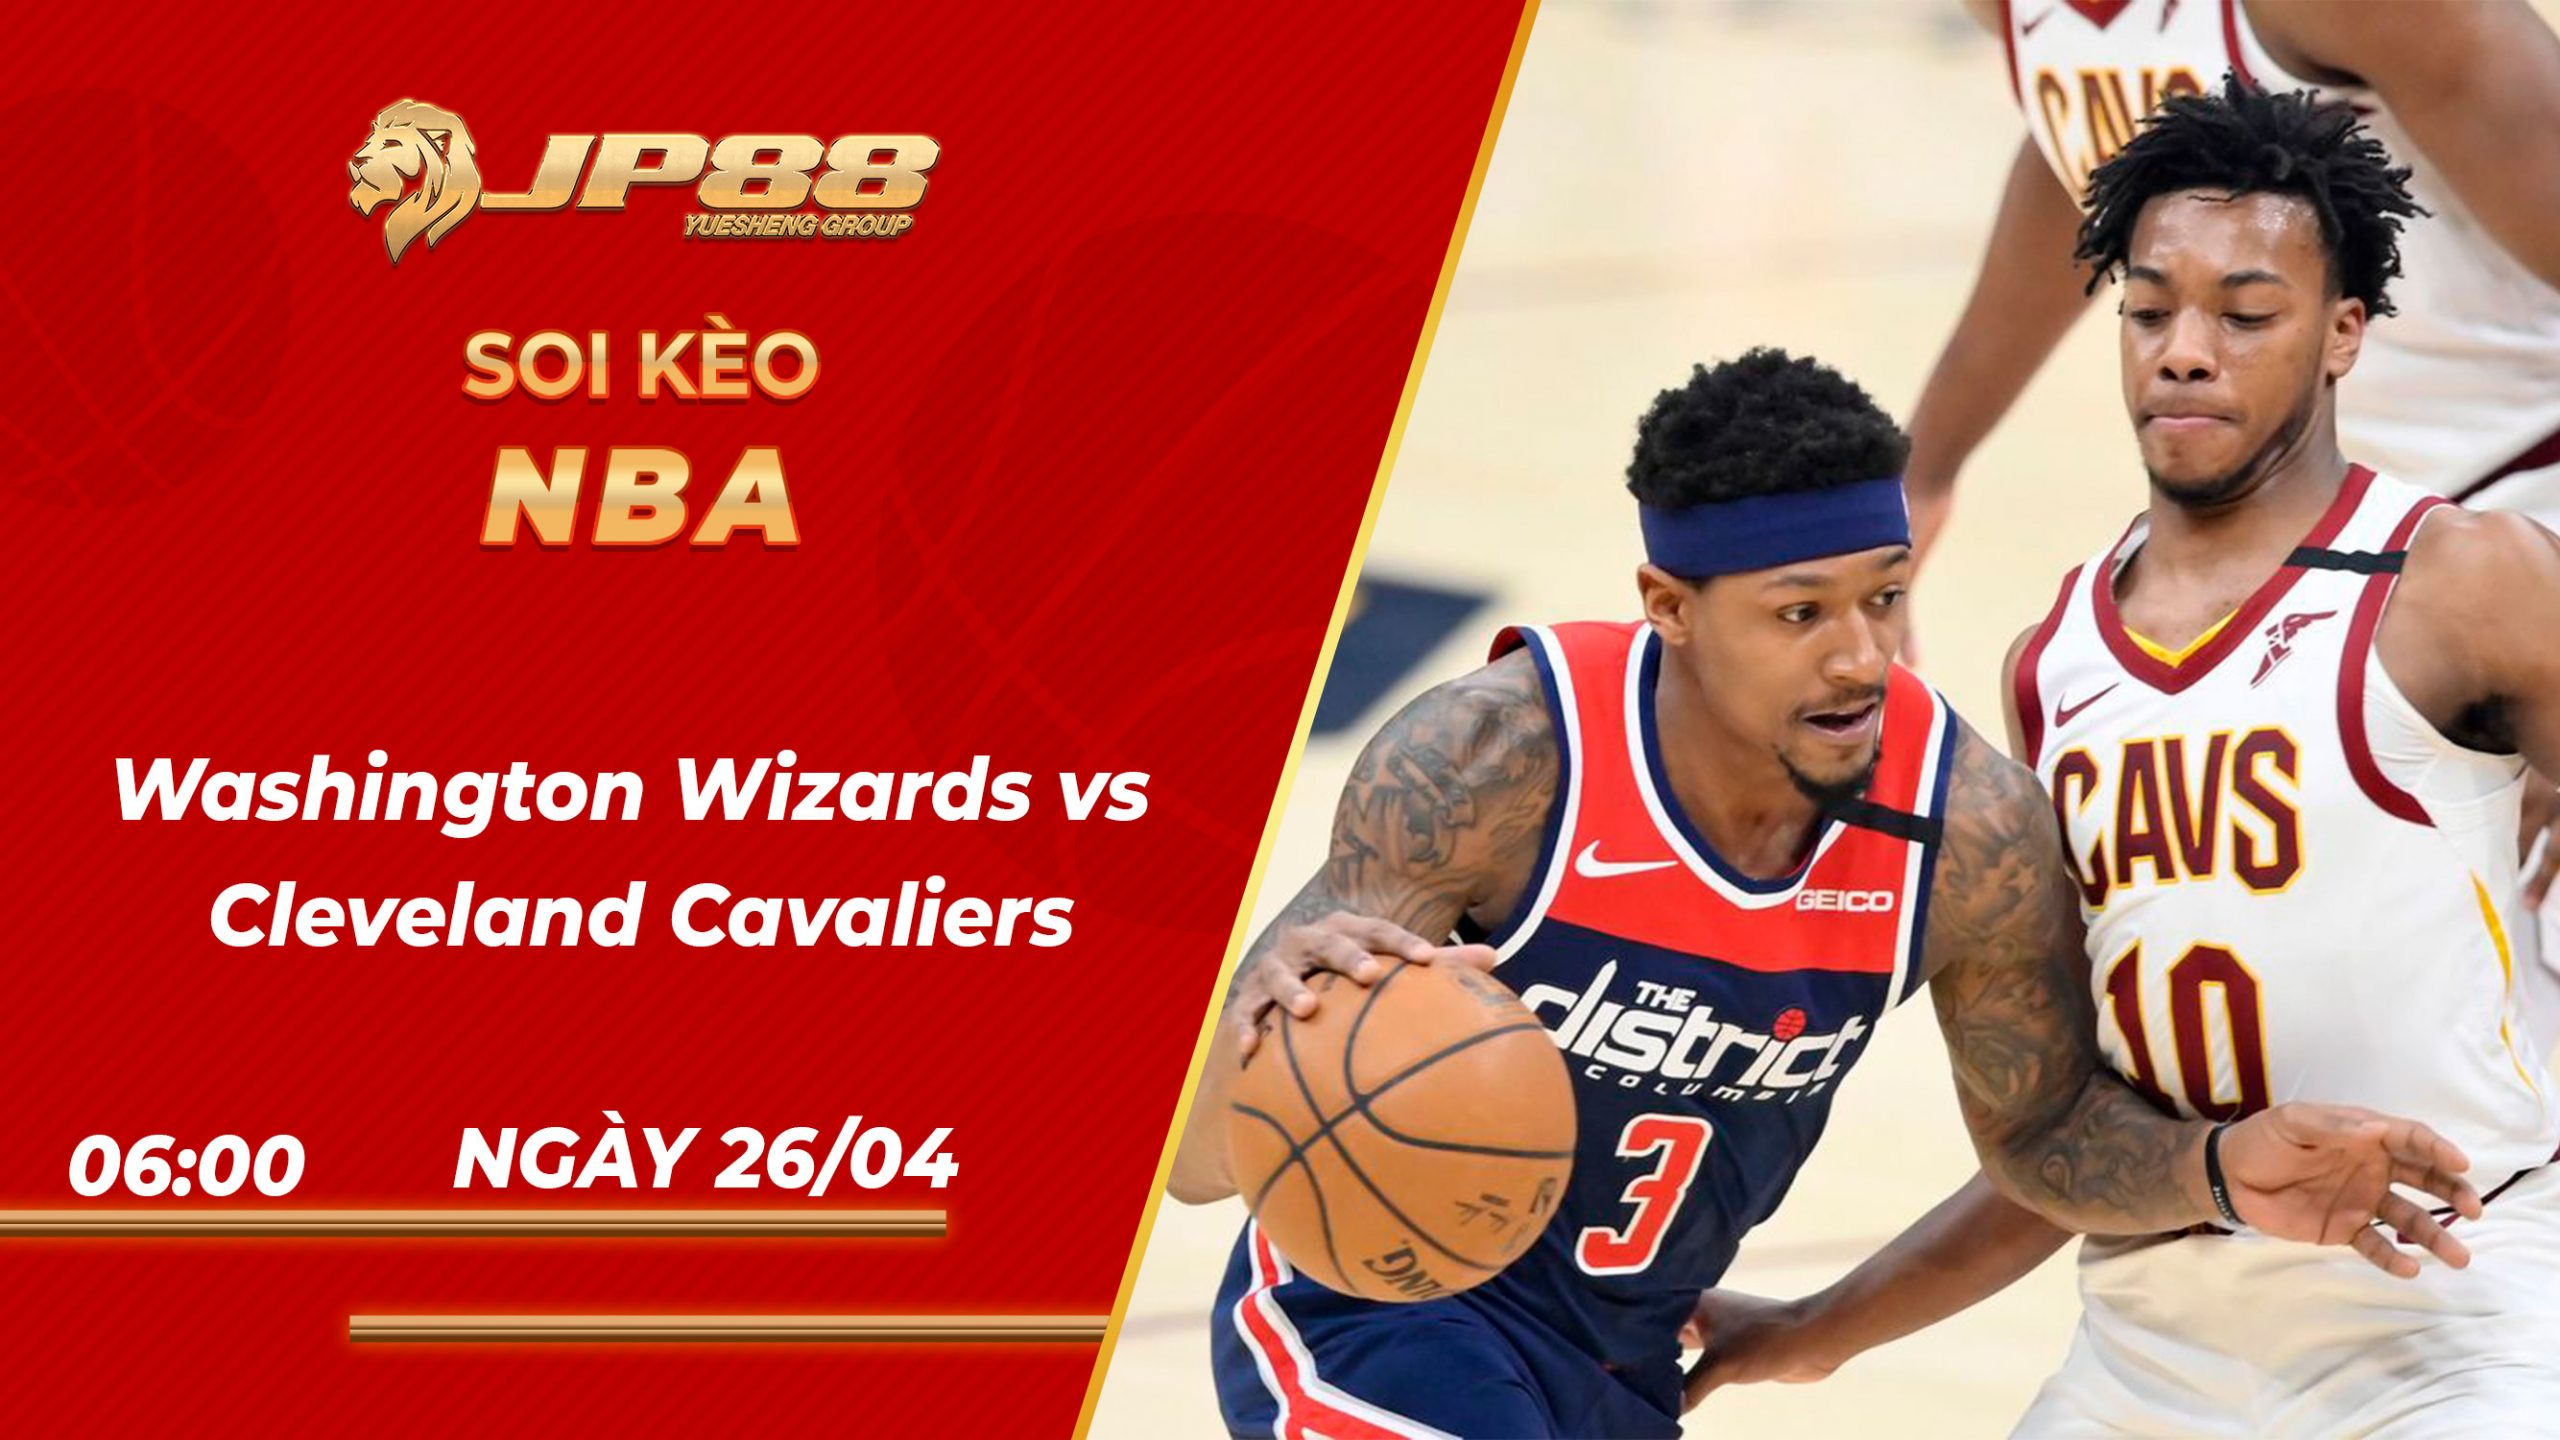 Soi kèo bóng rổ Washington Wizards vs Cleveland Cavaliers – 26/04/2021